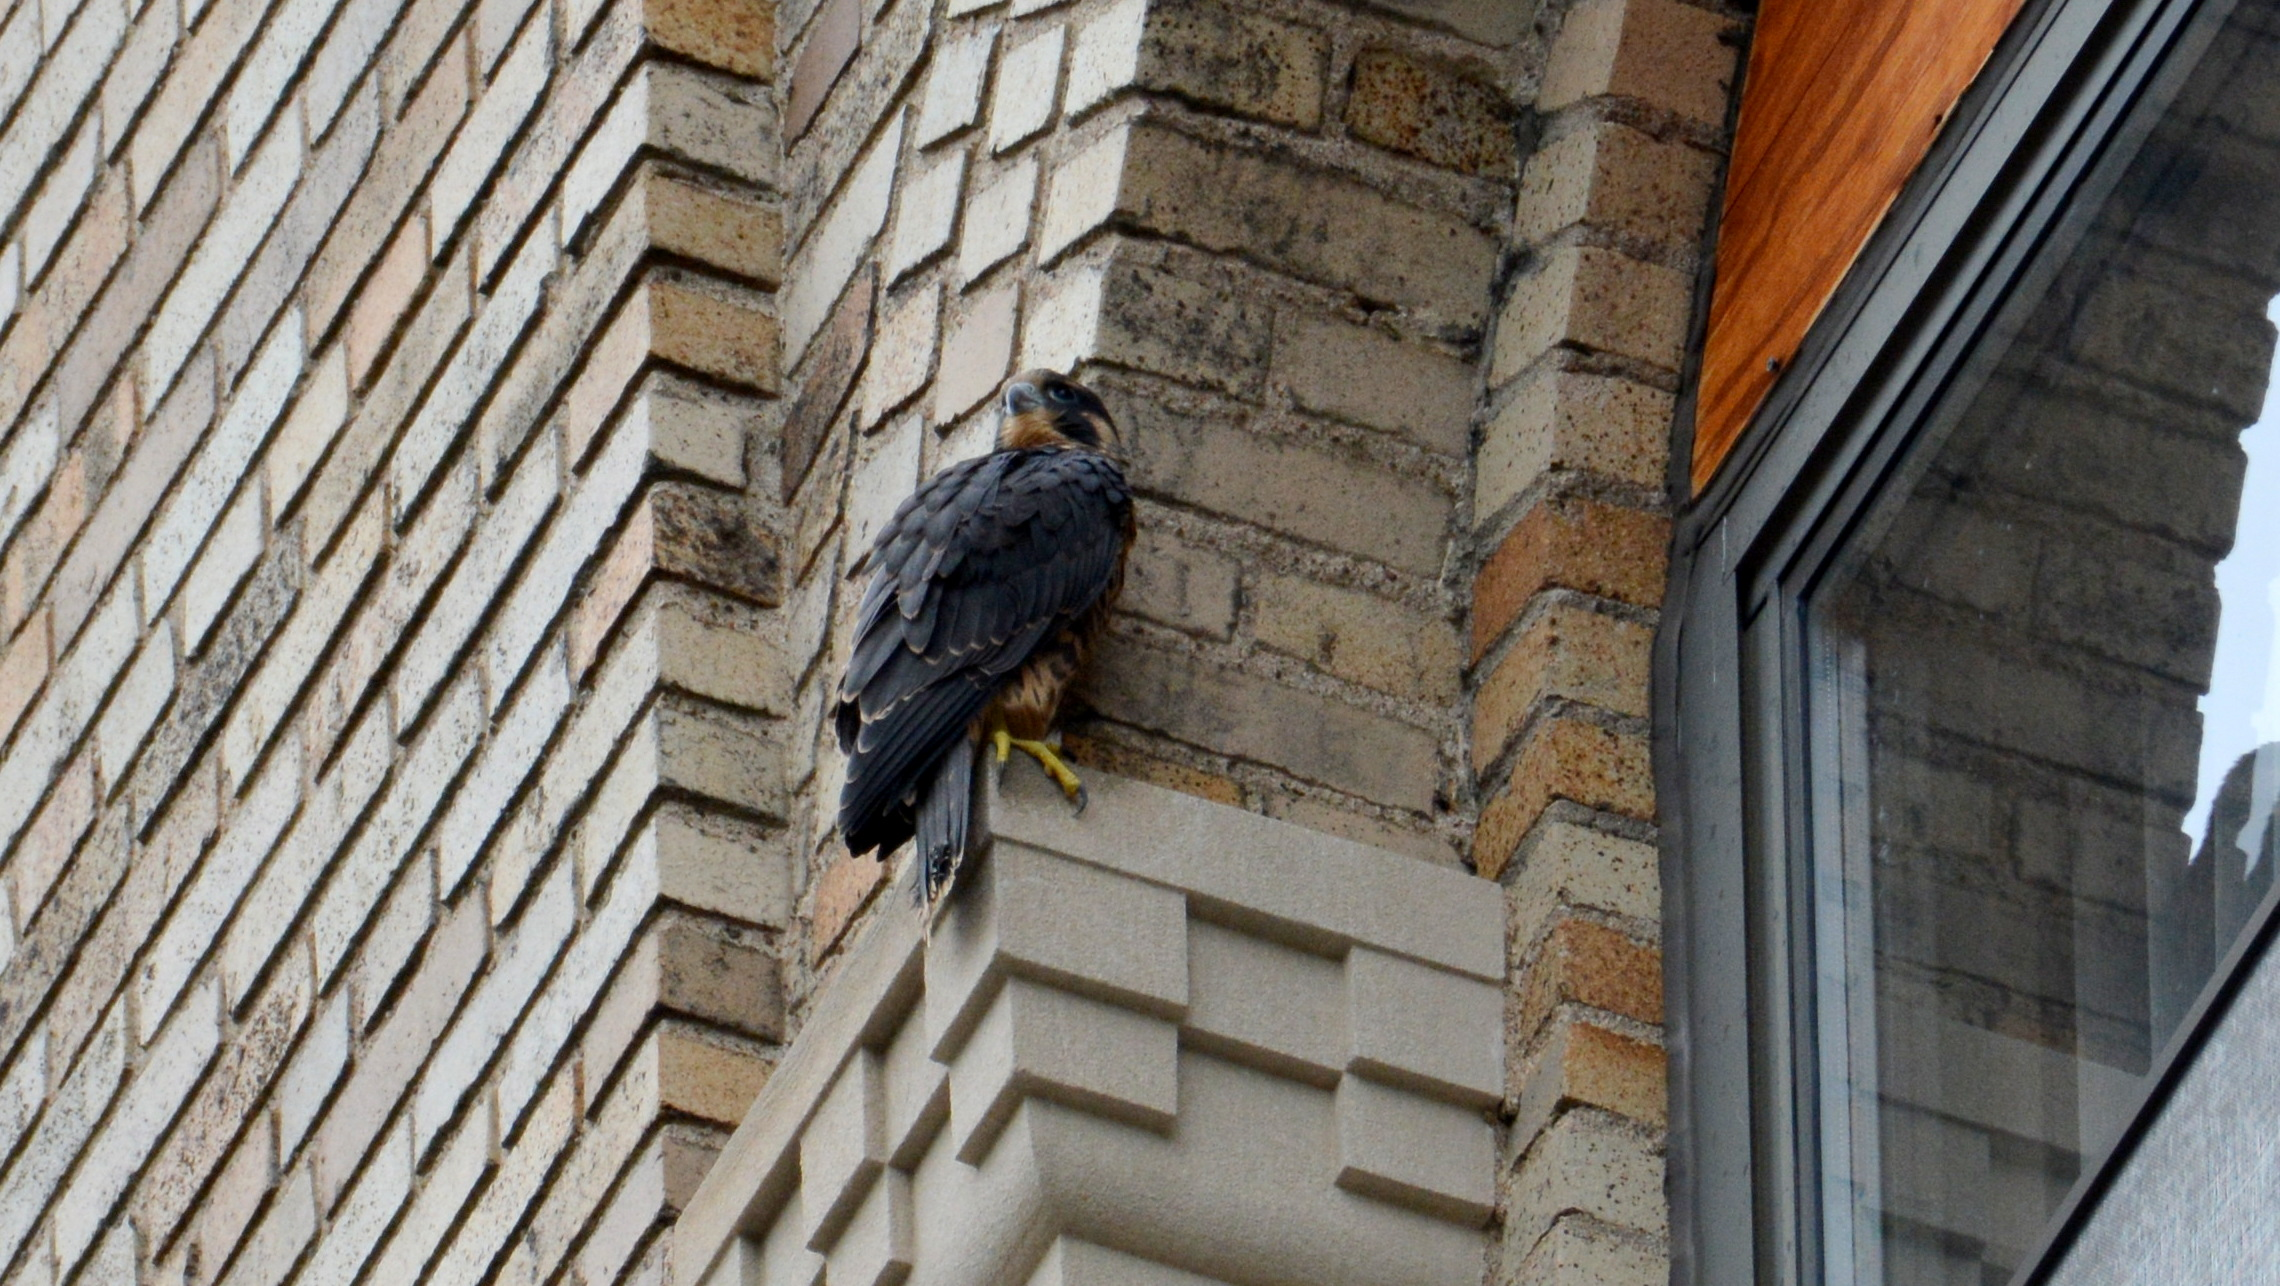 After a few missteps, Zander claws his way un to a good perch on the ADK Bank Building